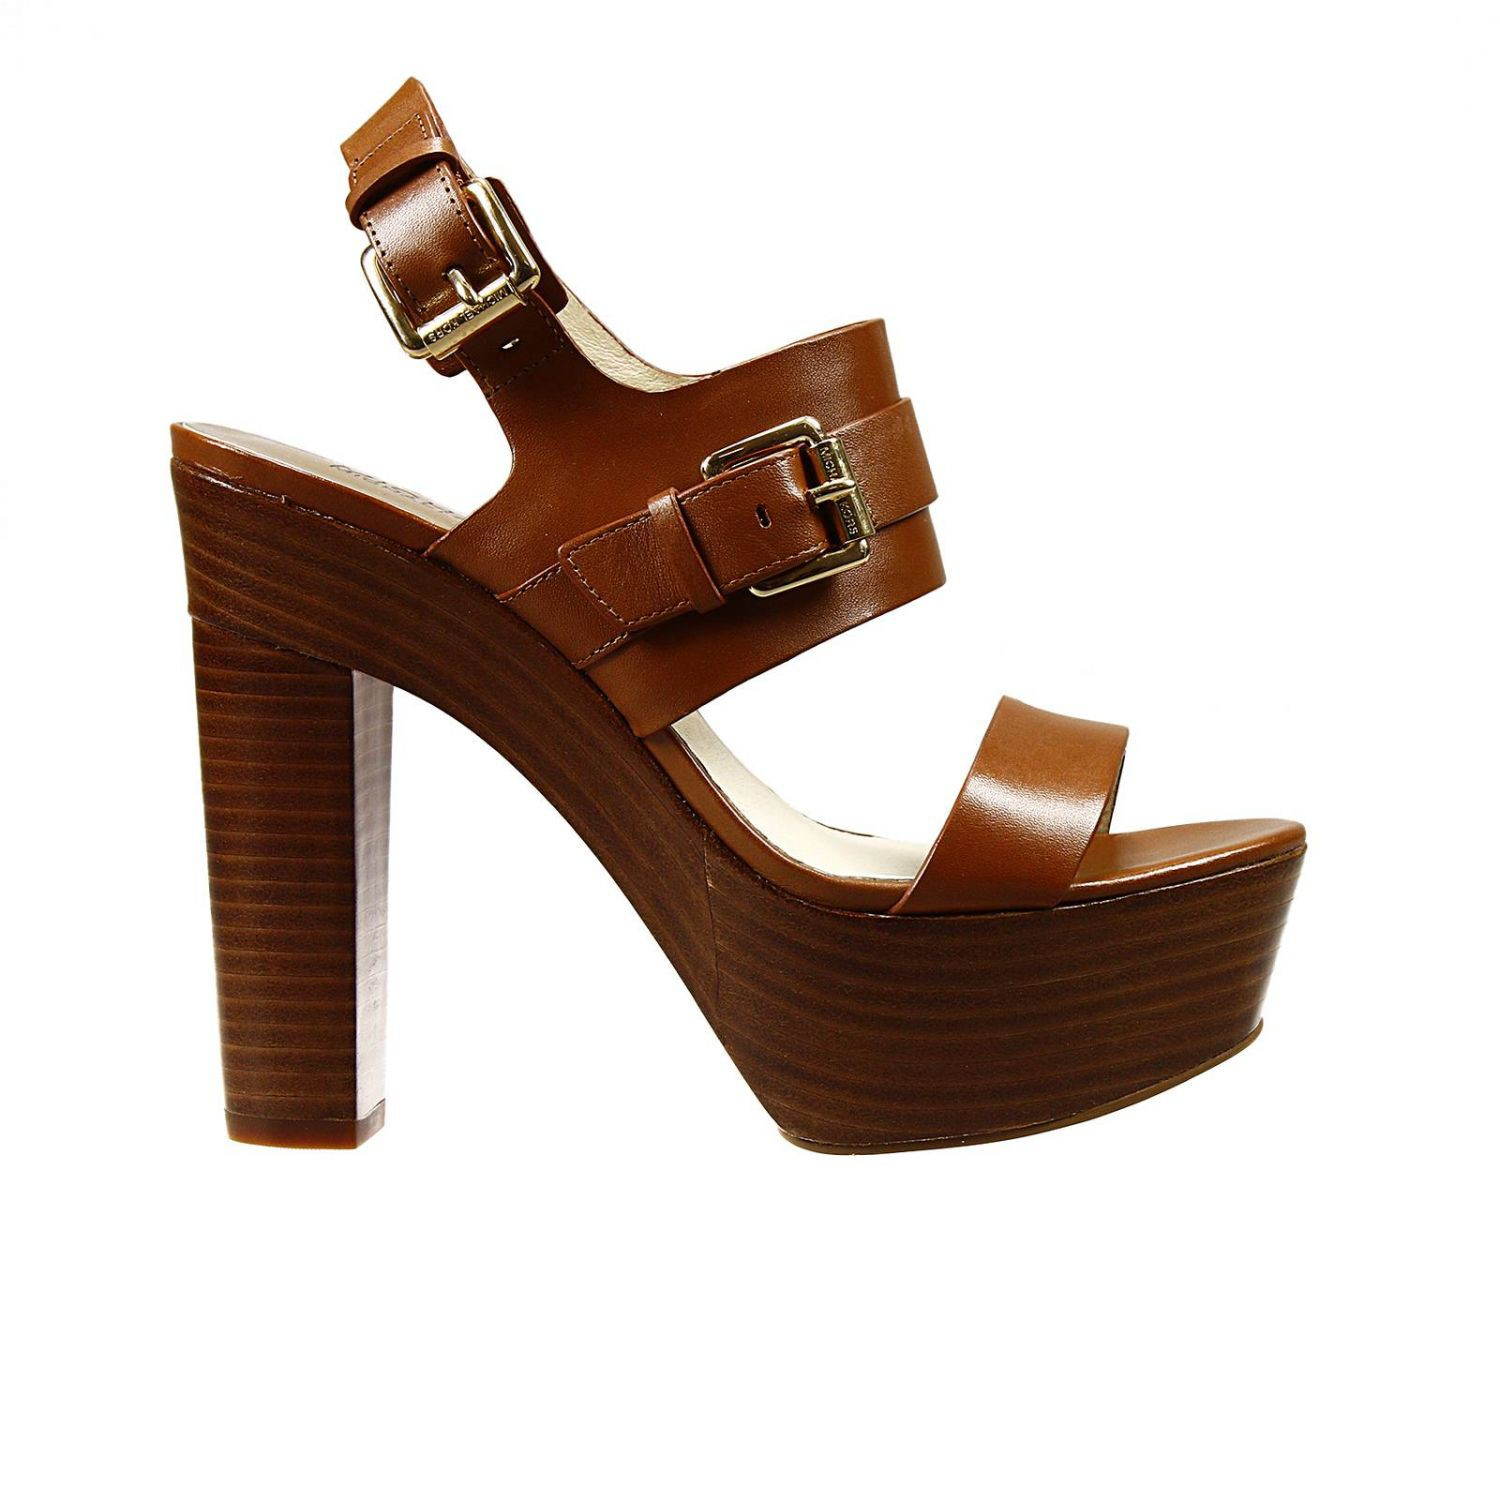 michael kors shoes beatrice heel 9 2 sandal leather with